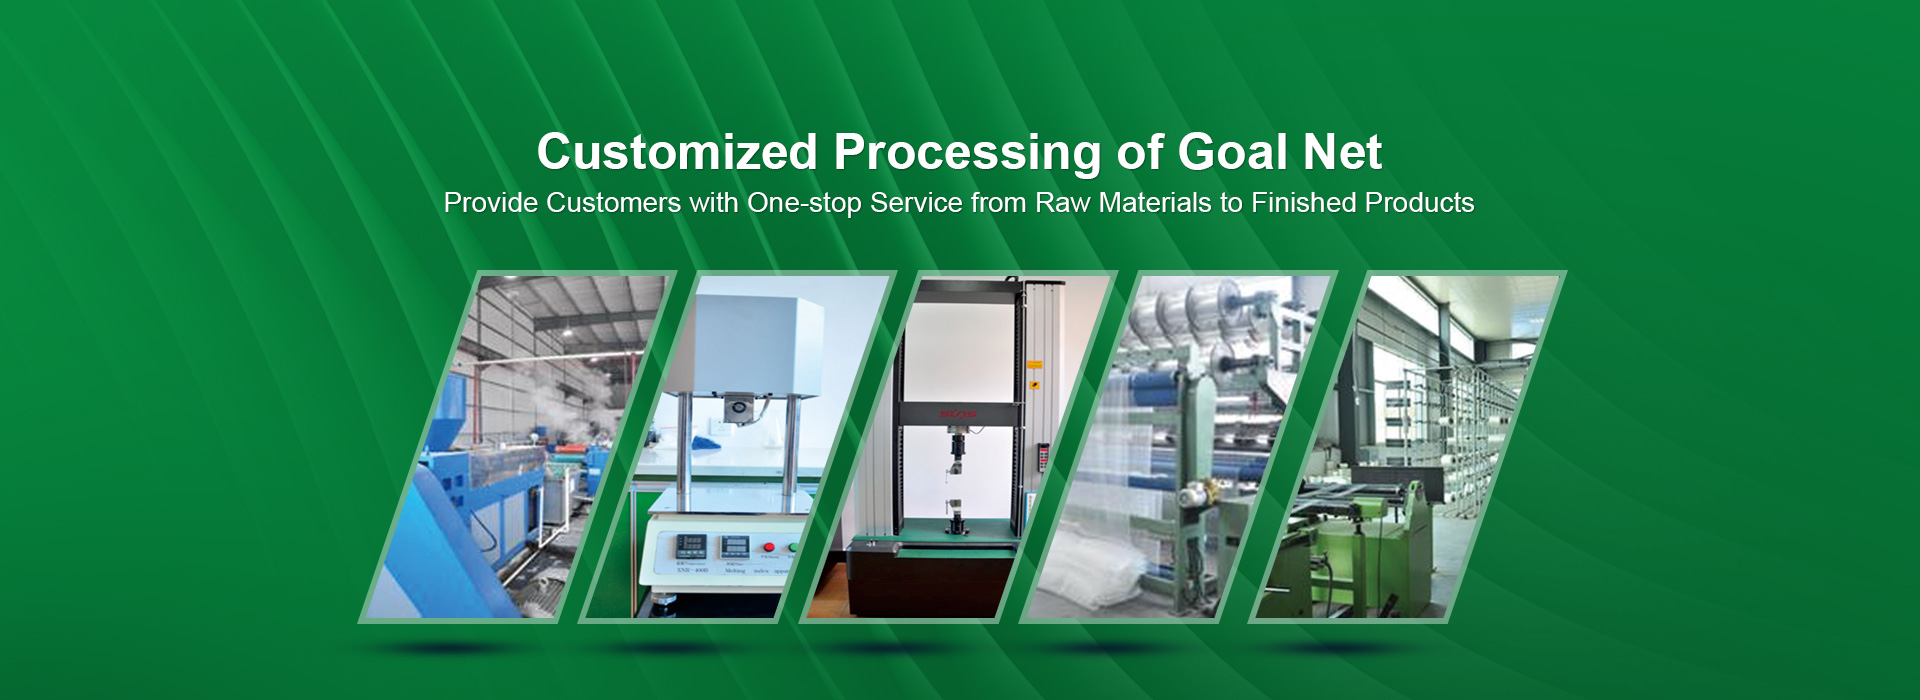 Customized processing of products